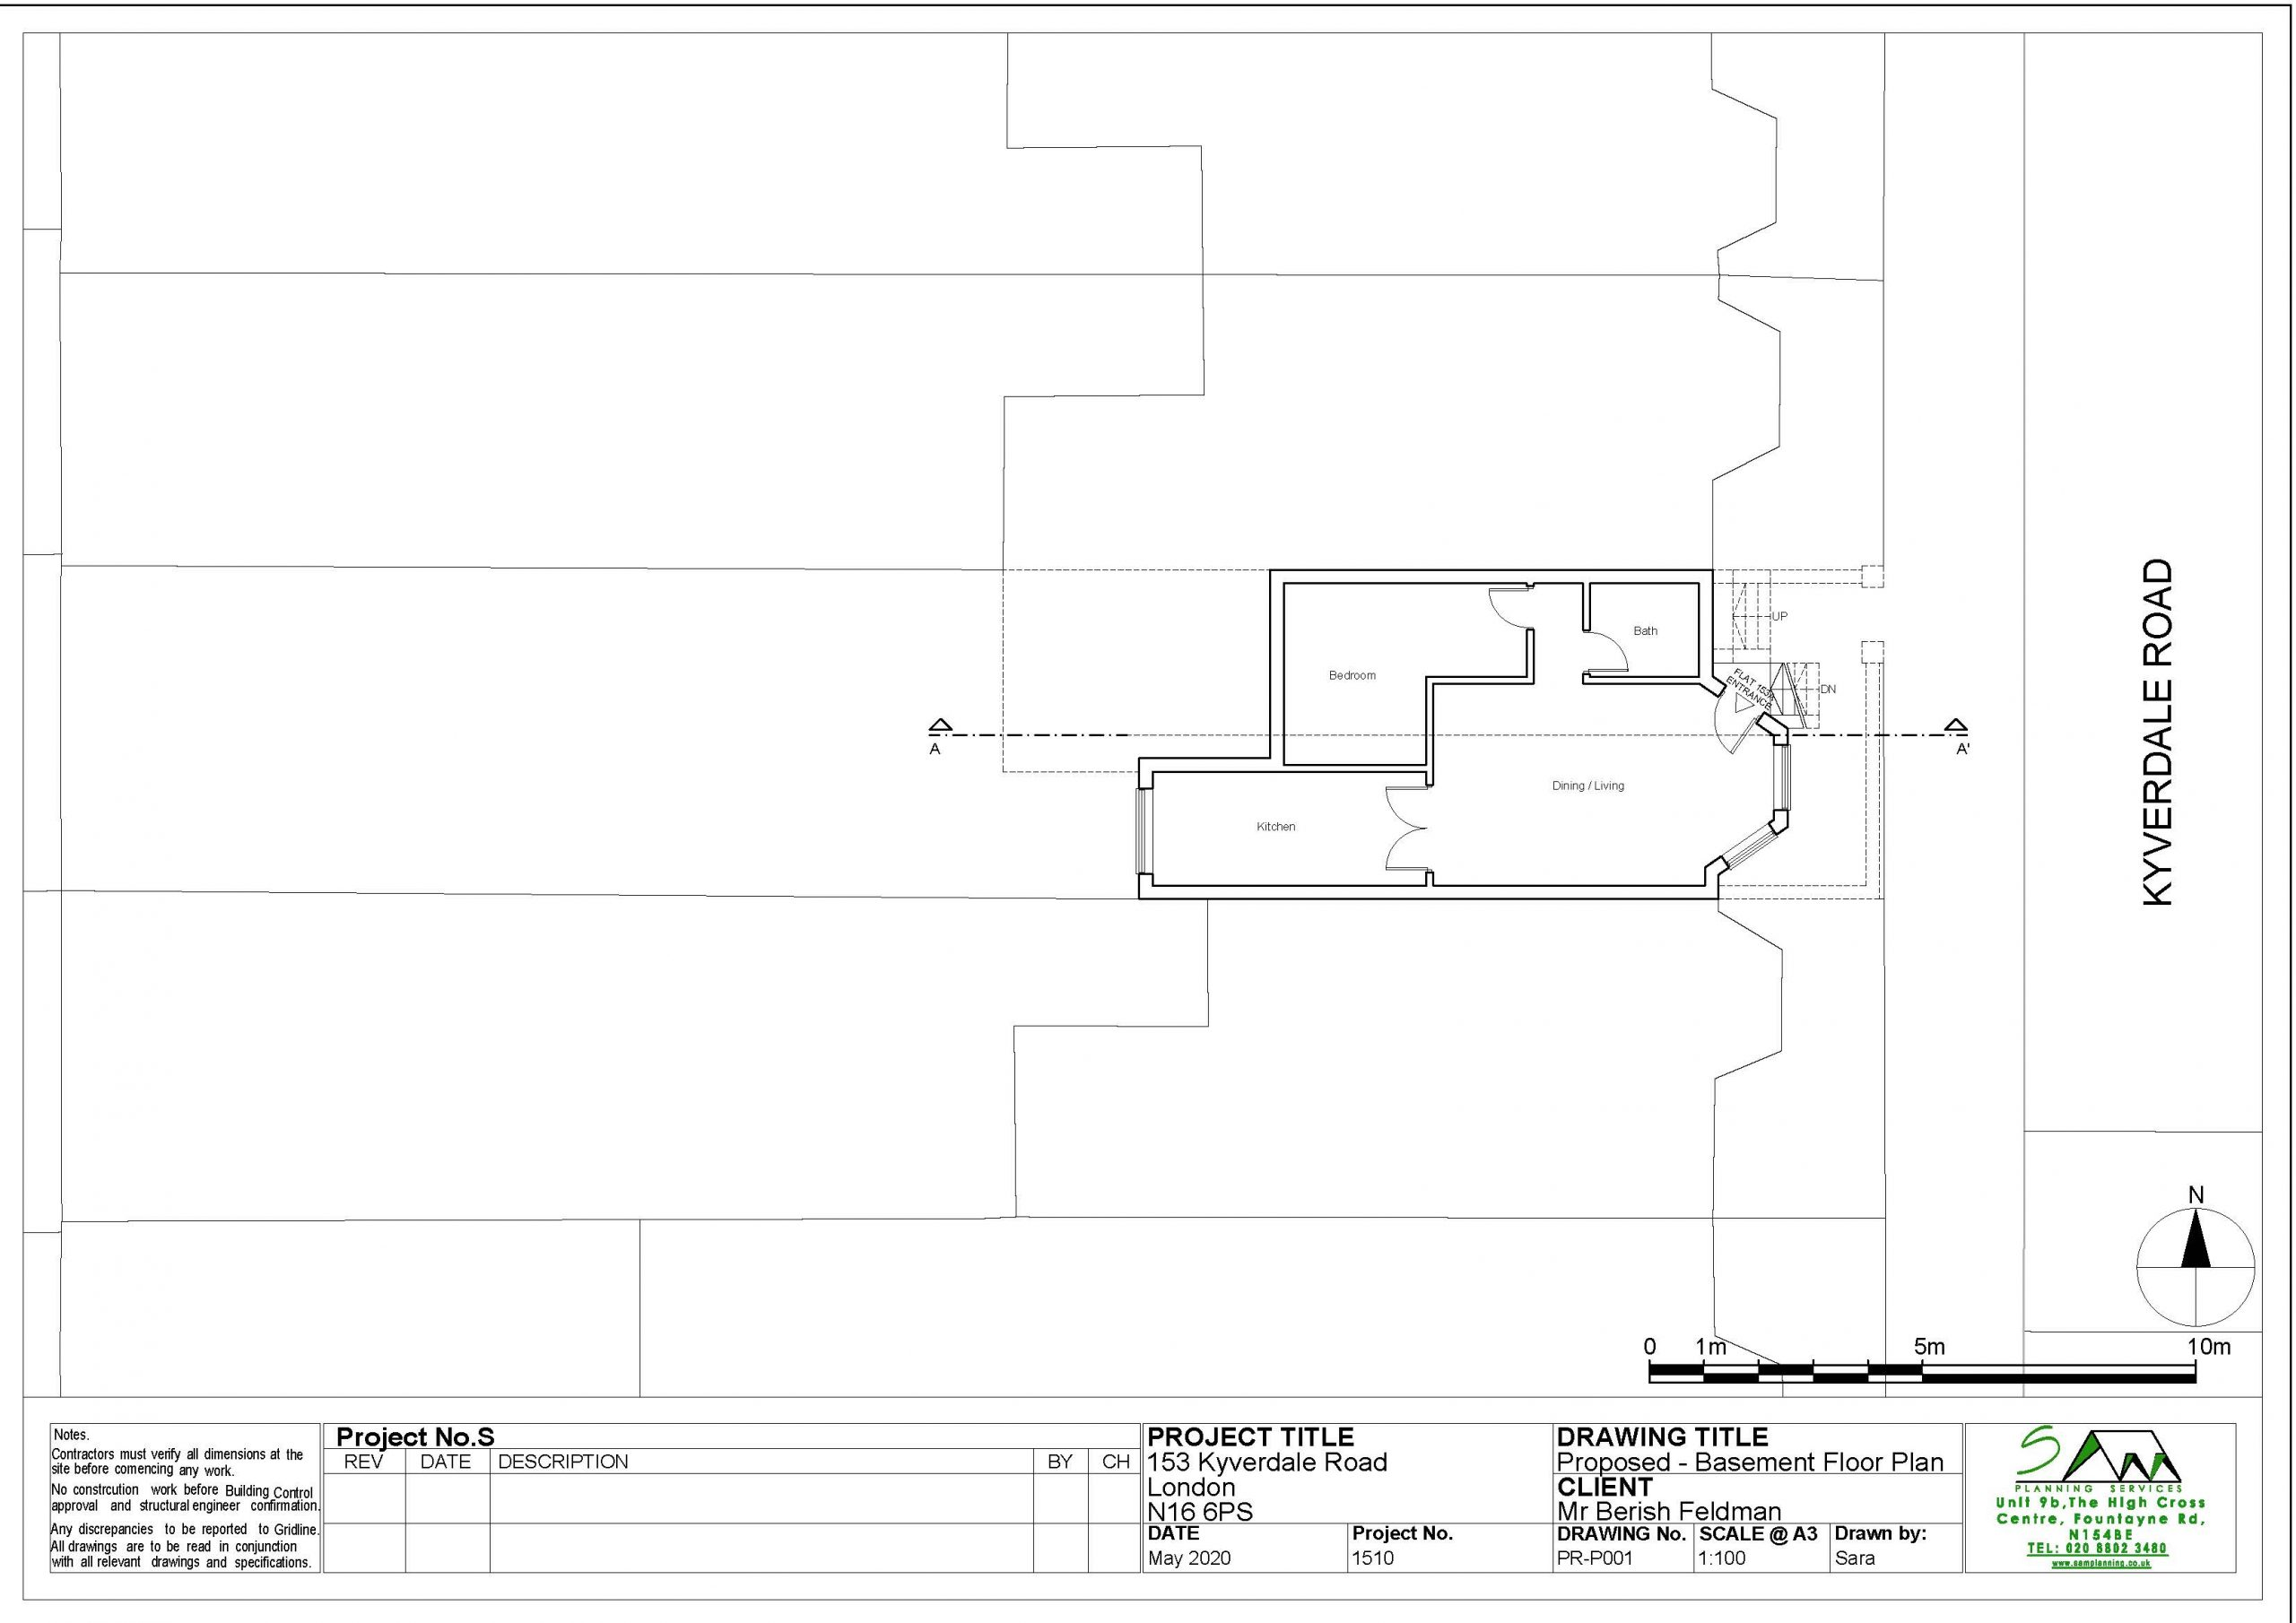 153kyverdaleProposed Basement Floor Plan